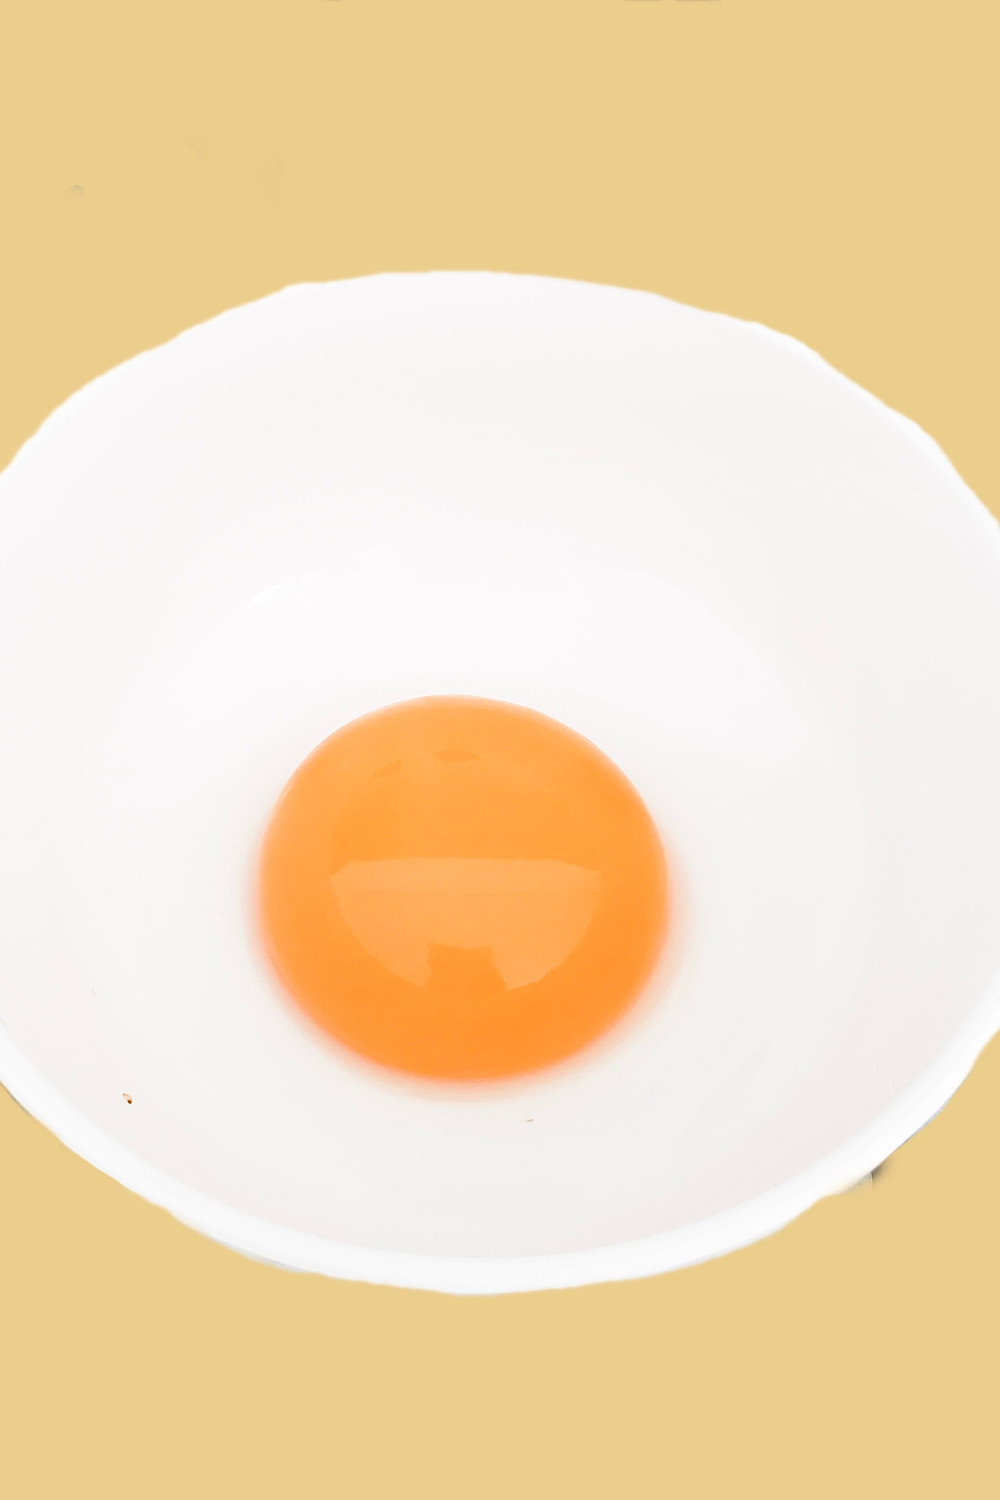 egg yolk separated